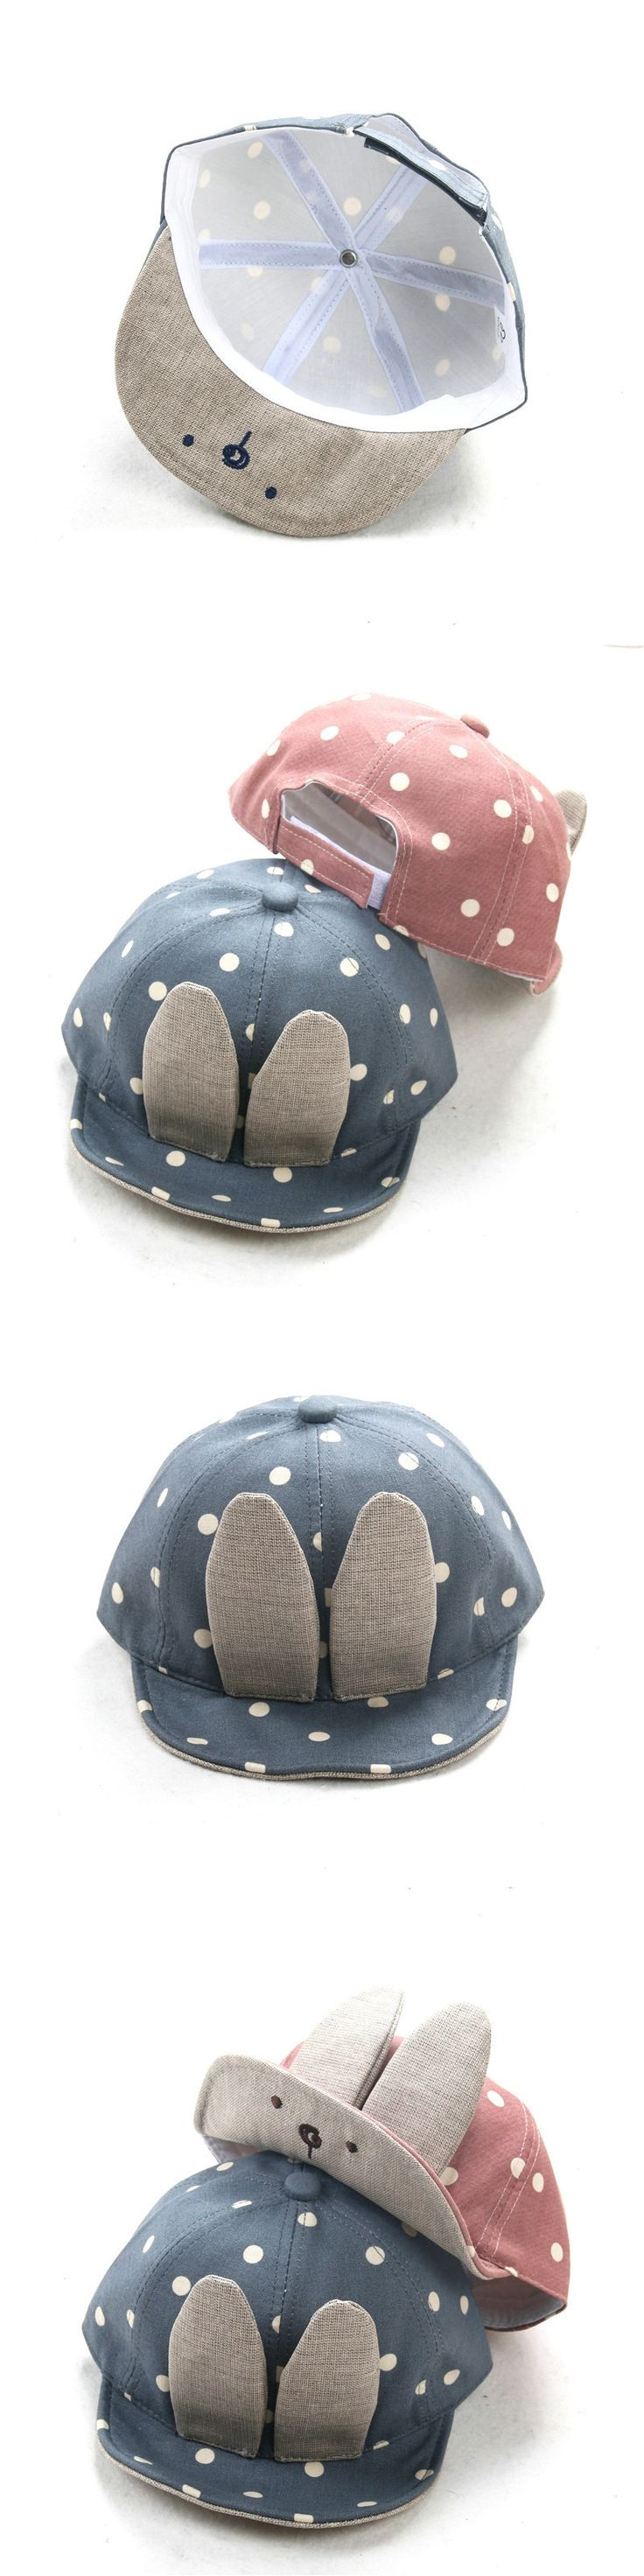 Baby Caps New Girl Boys Cap Summer Hats For Boy Cute Infant Sun Hat With Ear Sunscreen Dot Baby Girl Hat Spring Baby Accessories